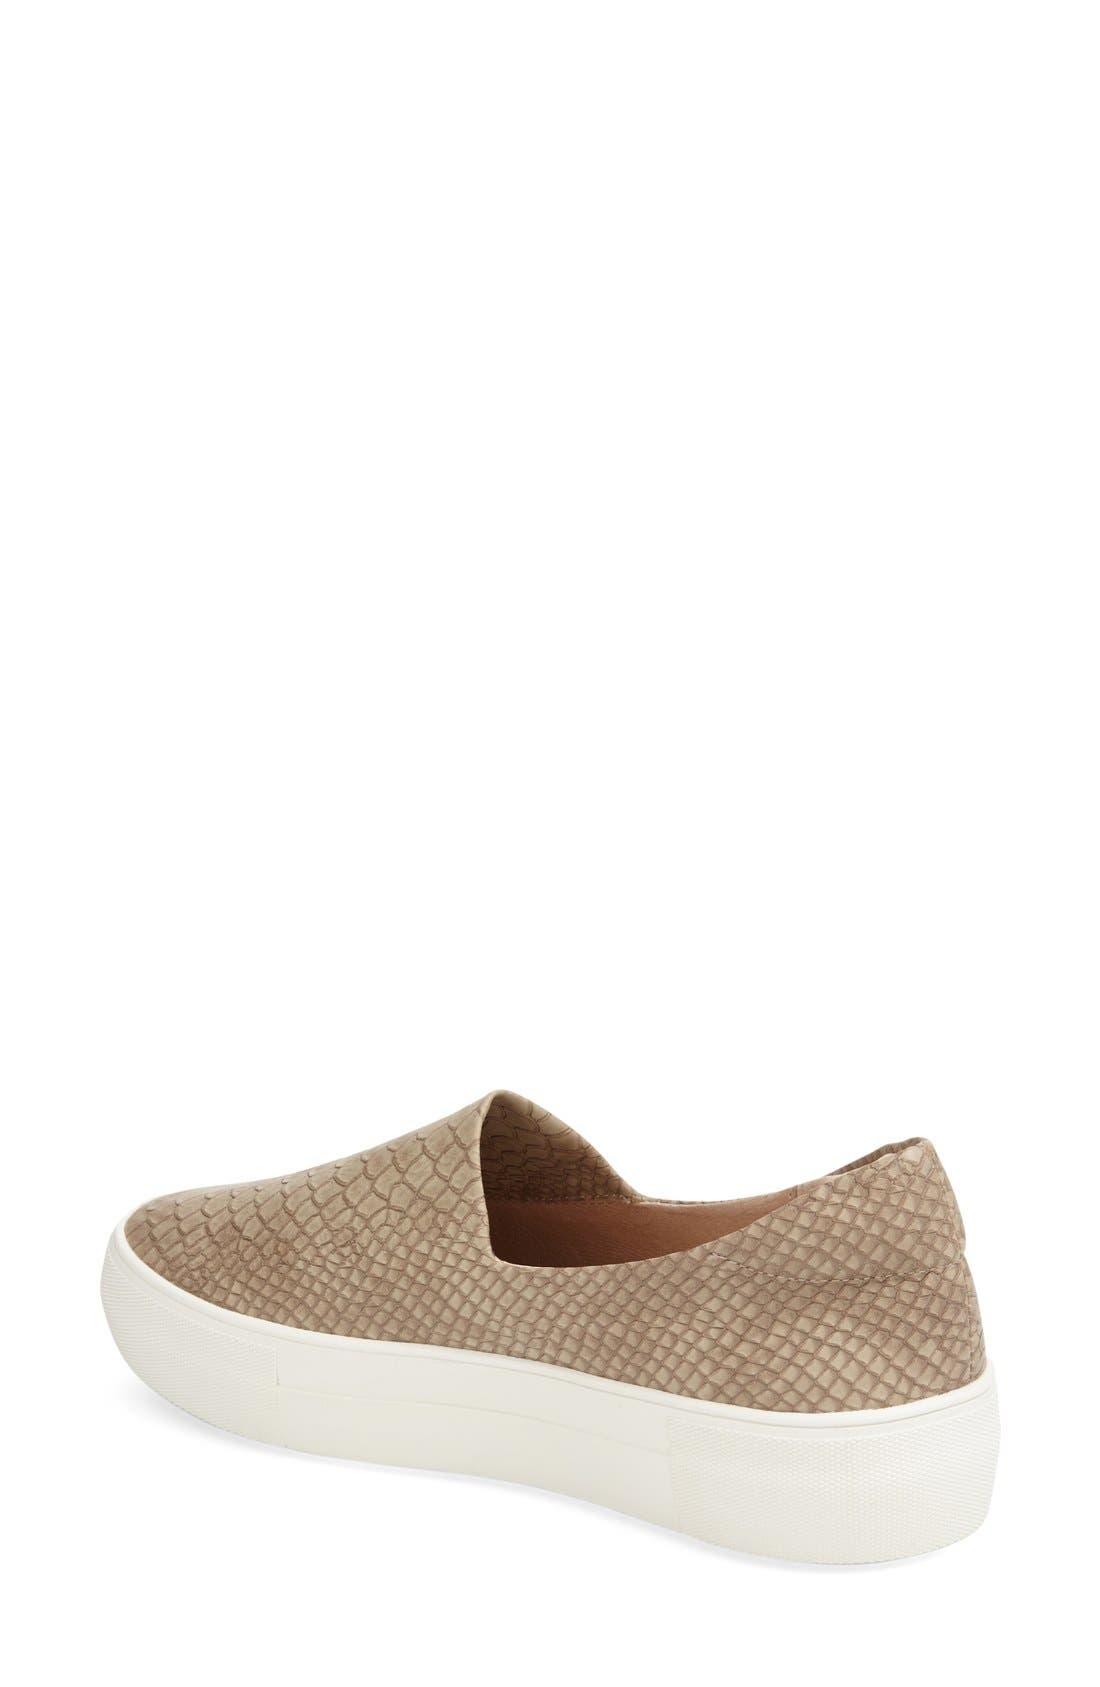 'Ariana' Platform Sneaker,                             Alternate thumbnail 2, color,                             TAUPE EMBOSSED LUX